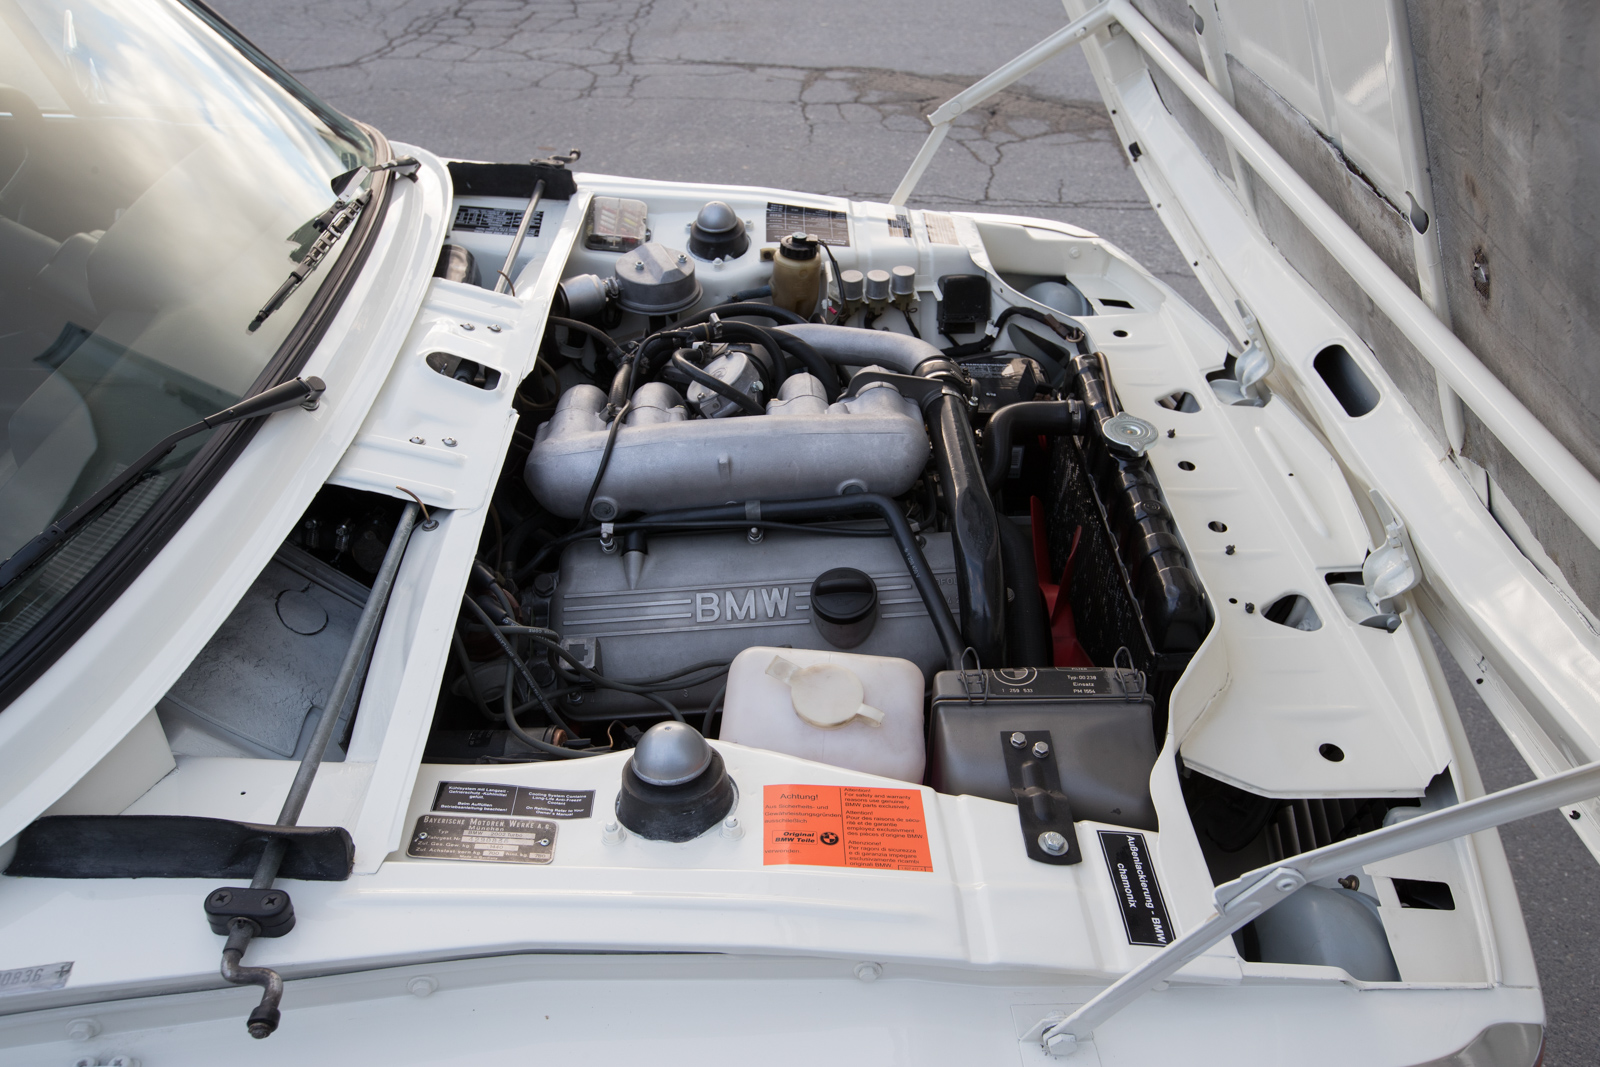 1974 BMW 2002 Turbo engine compartment